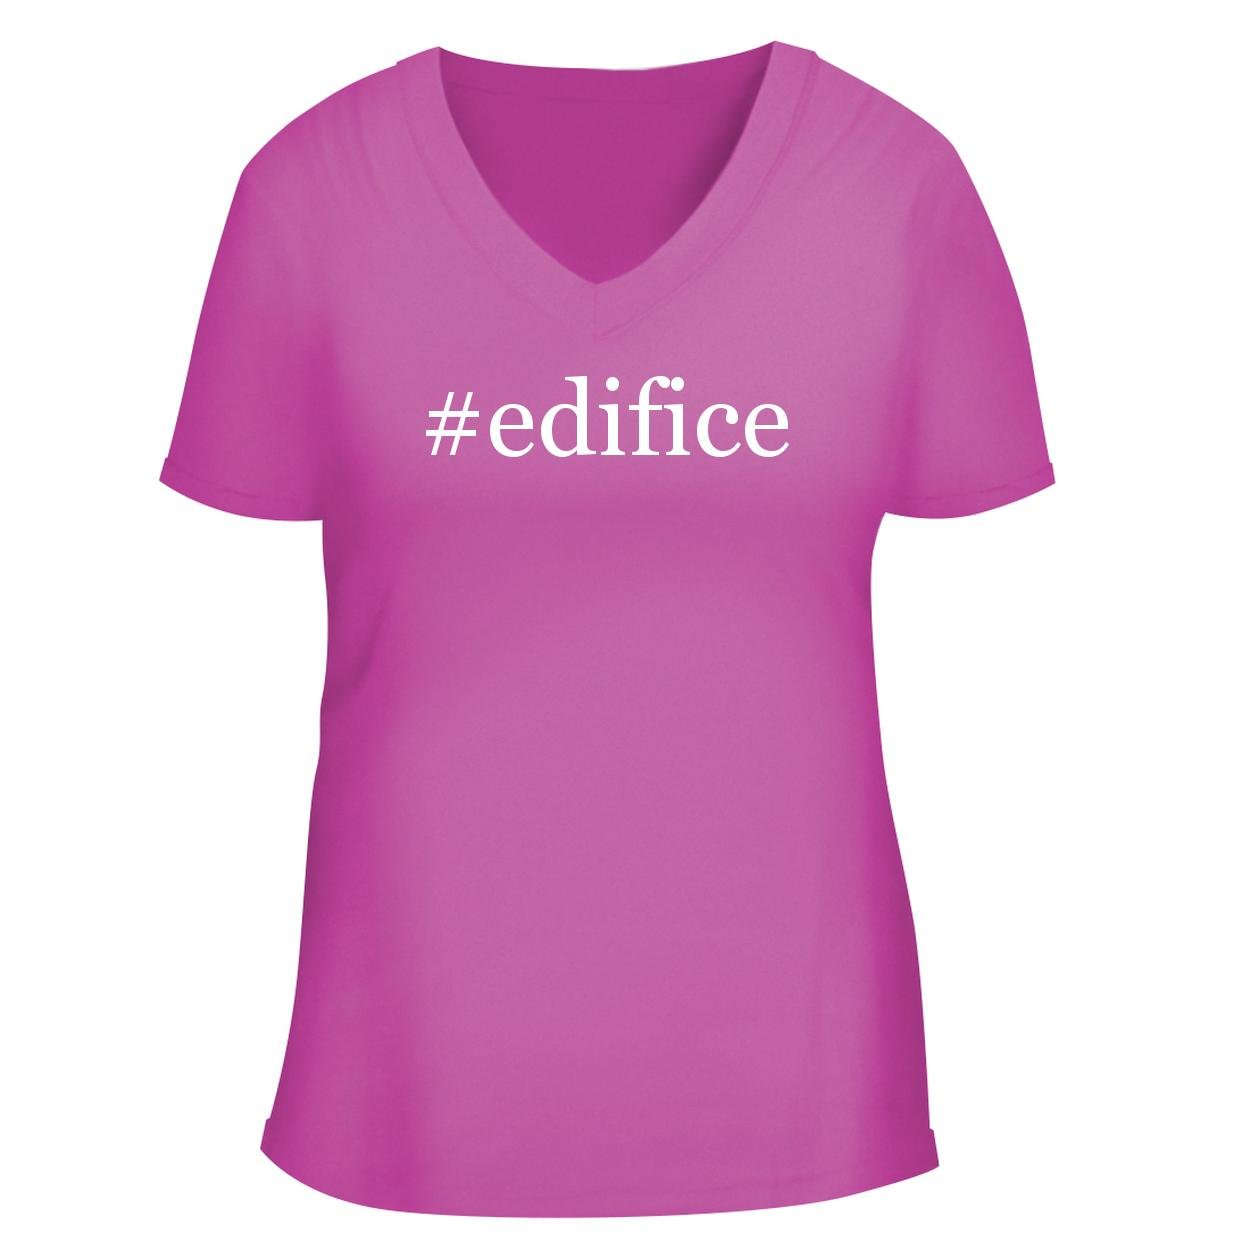 BH Cool Designs #Edifice - Cute Women's V Neck Graphic Tee, Fuchsia, Medium by BH Cool Designs